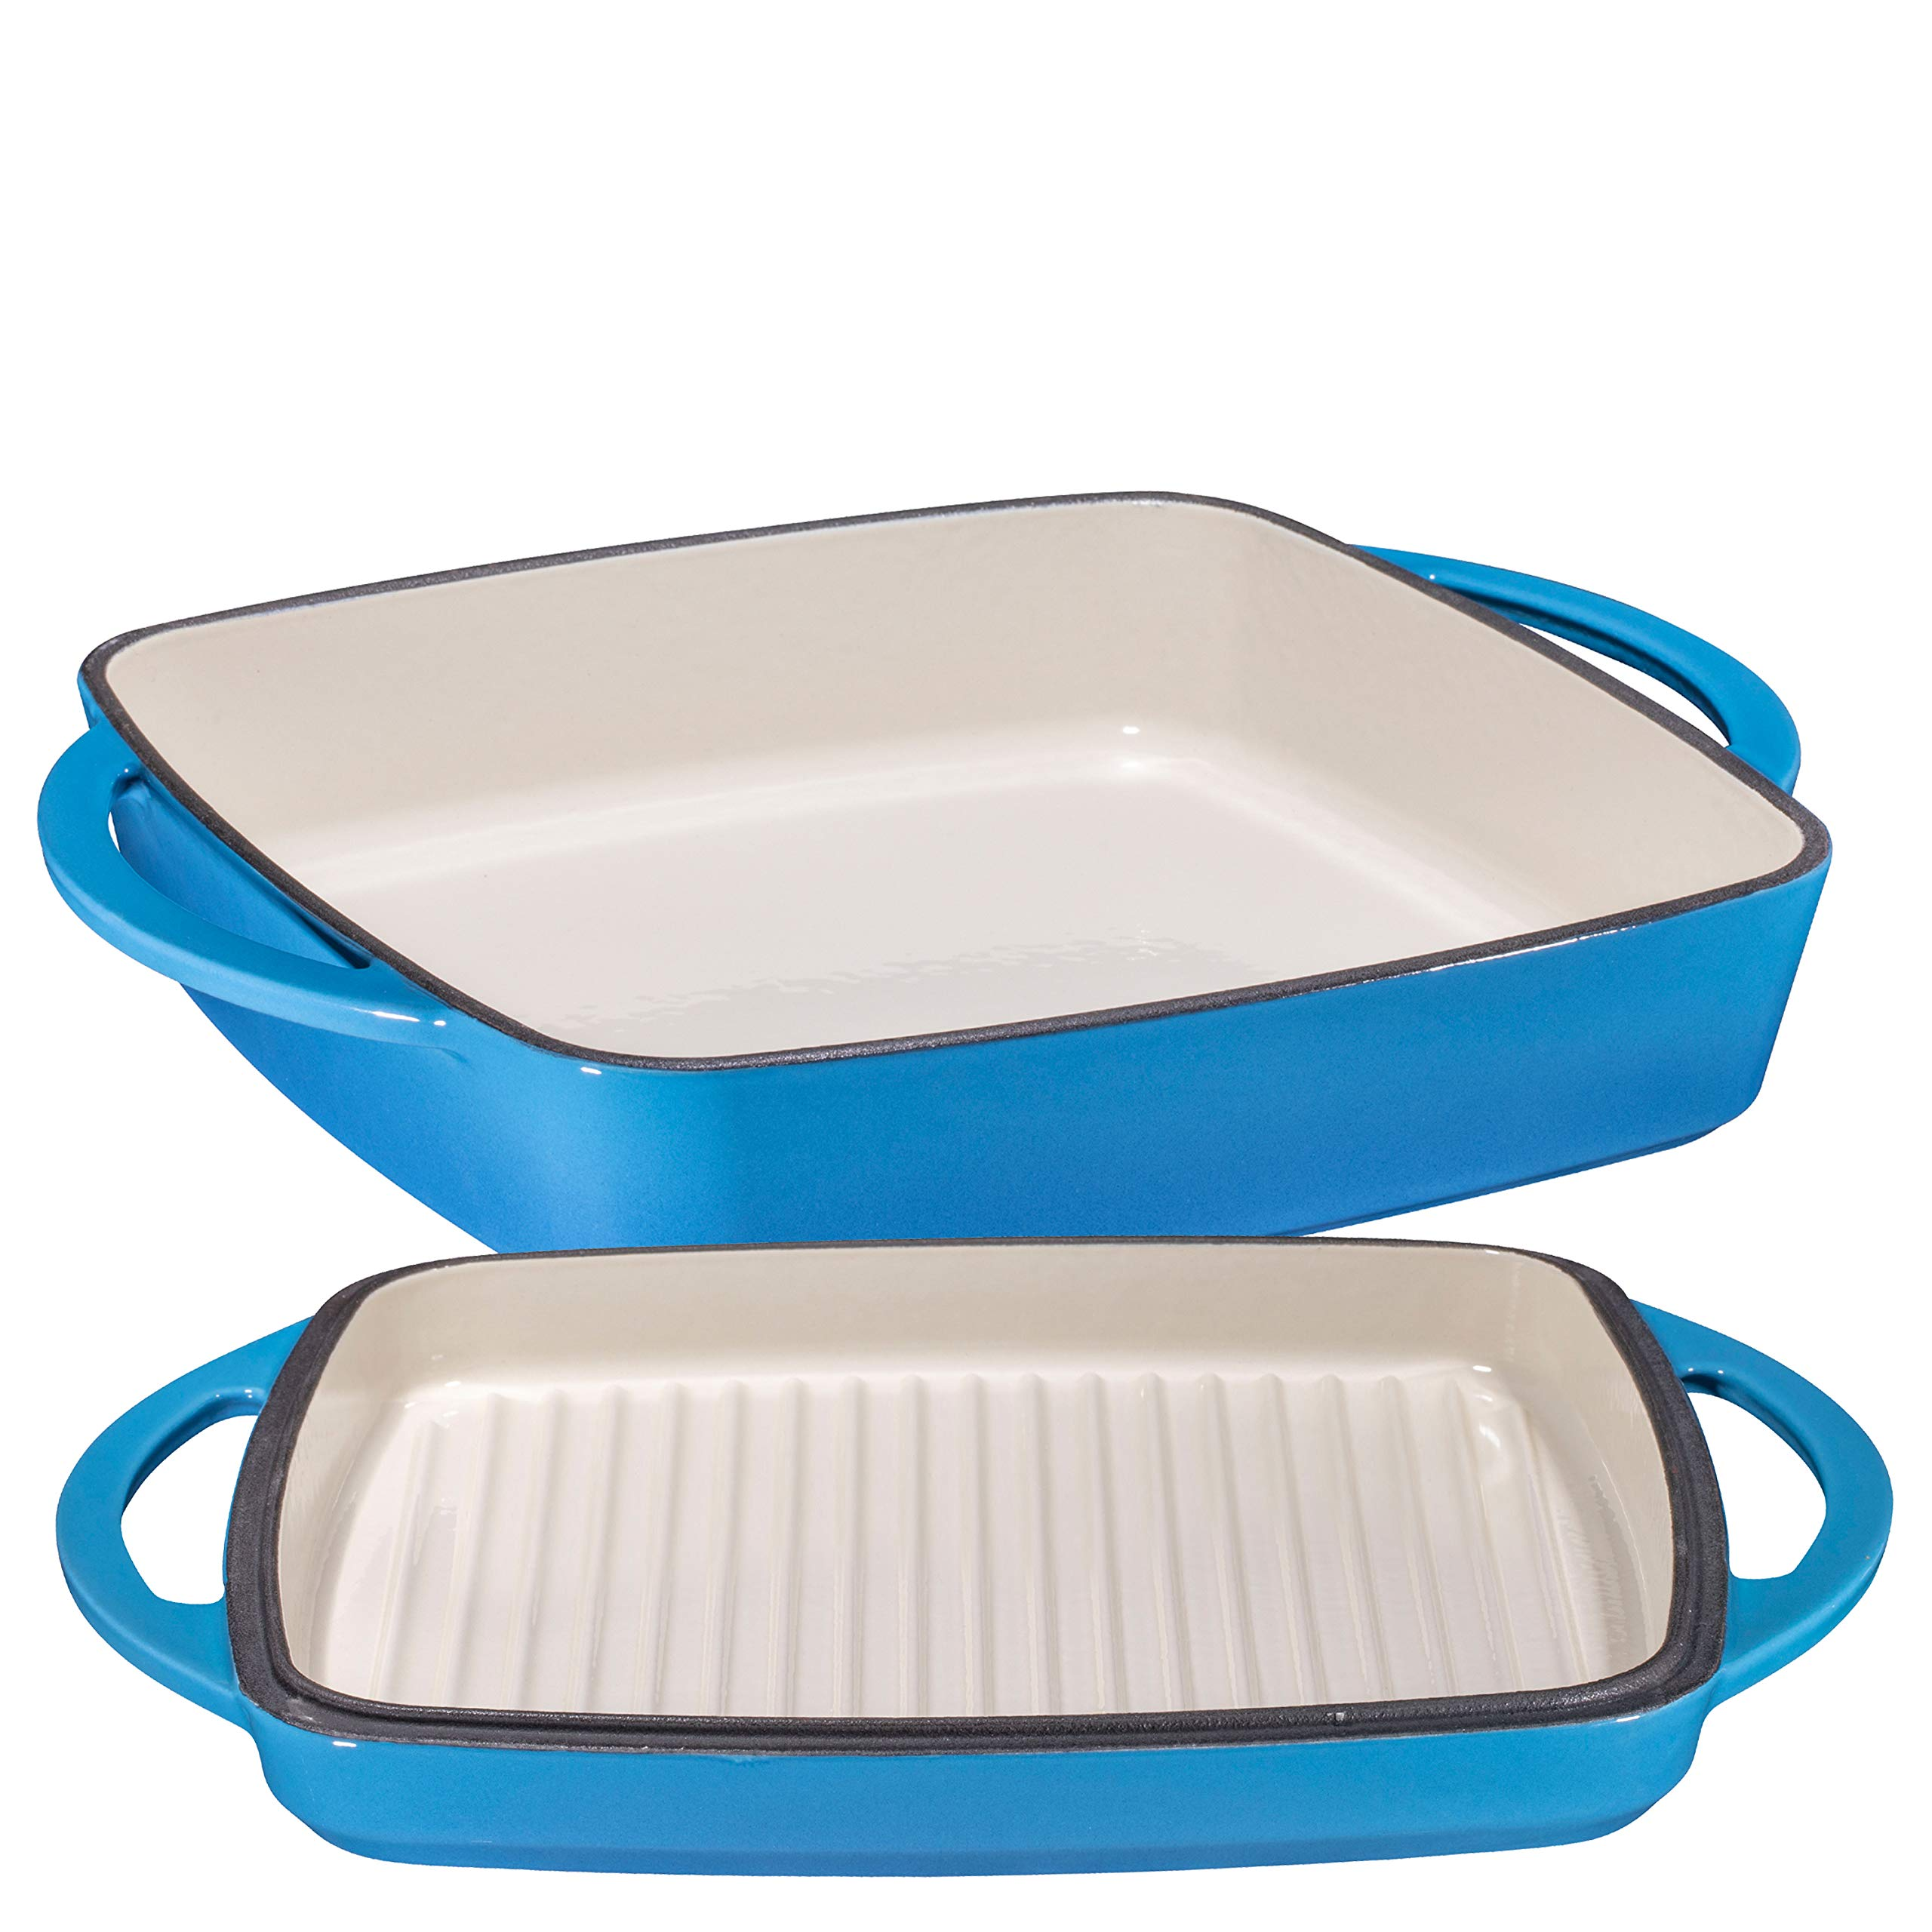 2 in 1 Enameled Cast Iron Square Casserole Baking Pan With Griddle Lid 2 in 1 Multi Baker Dish 11'' - Blue Whale